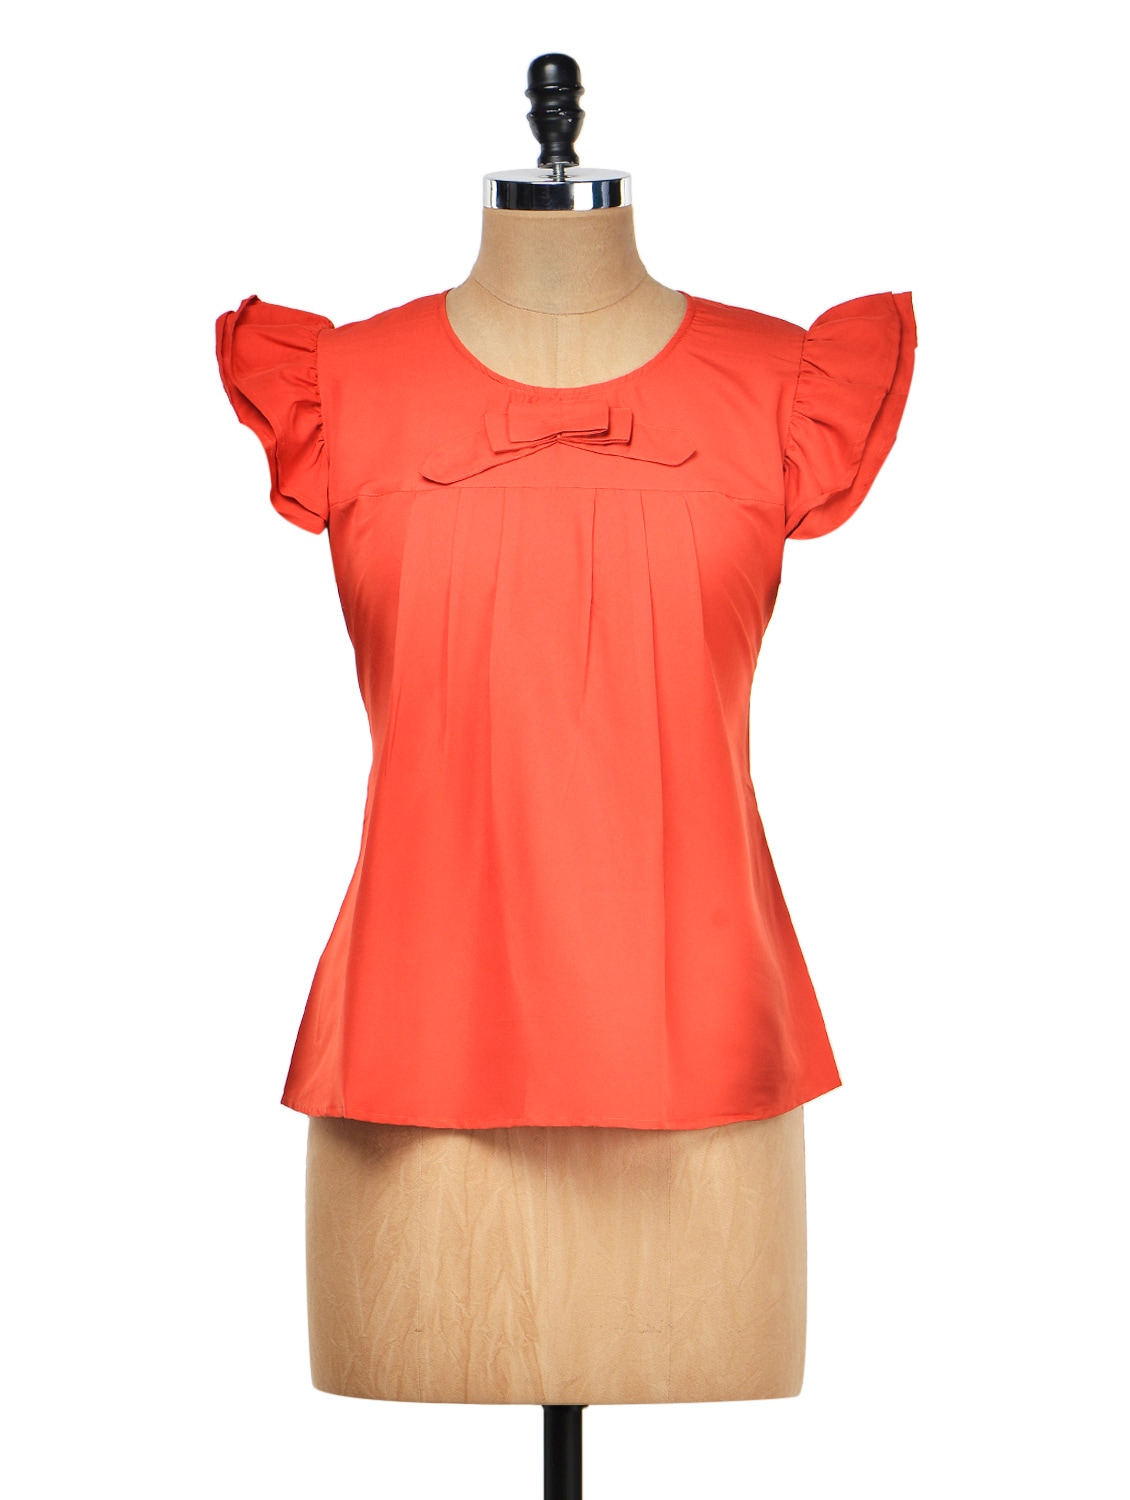 Red Bow Top With Ruffle Sleeves - Meee!